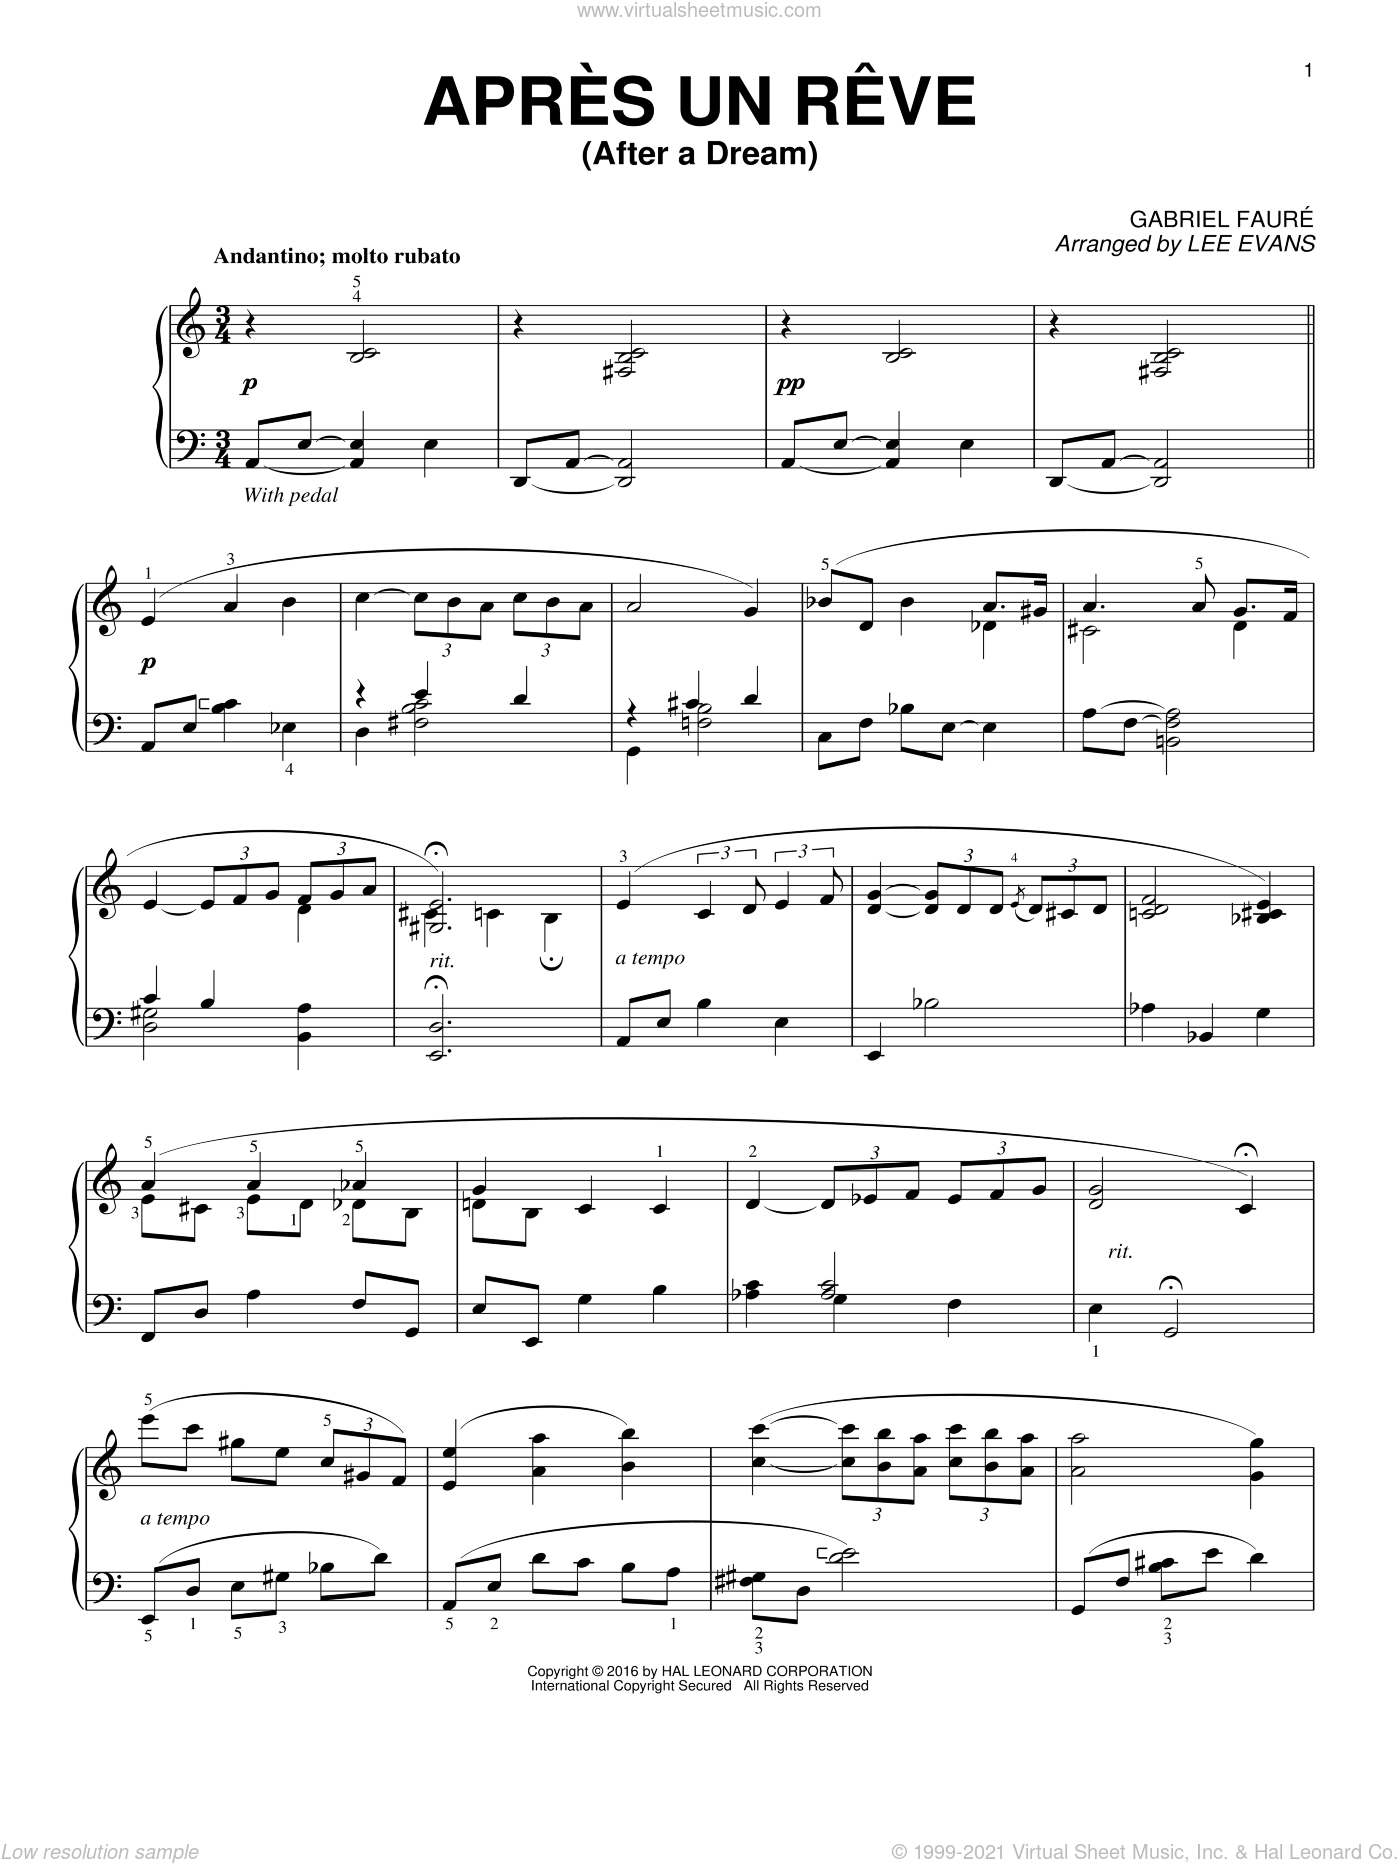 Apres un reve sheet music for piano solo by Lee Evans